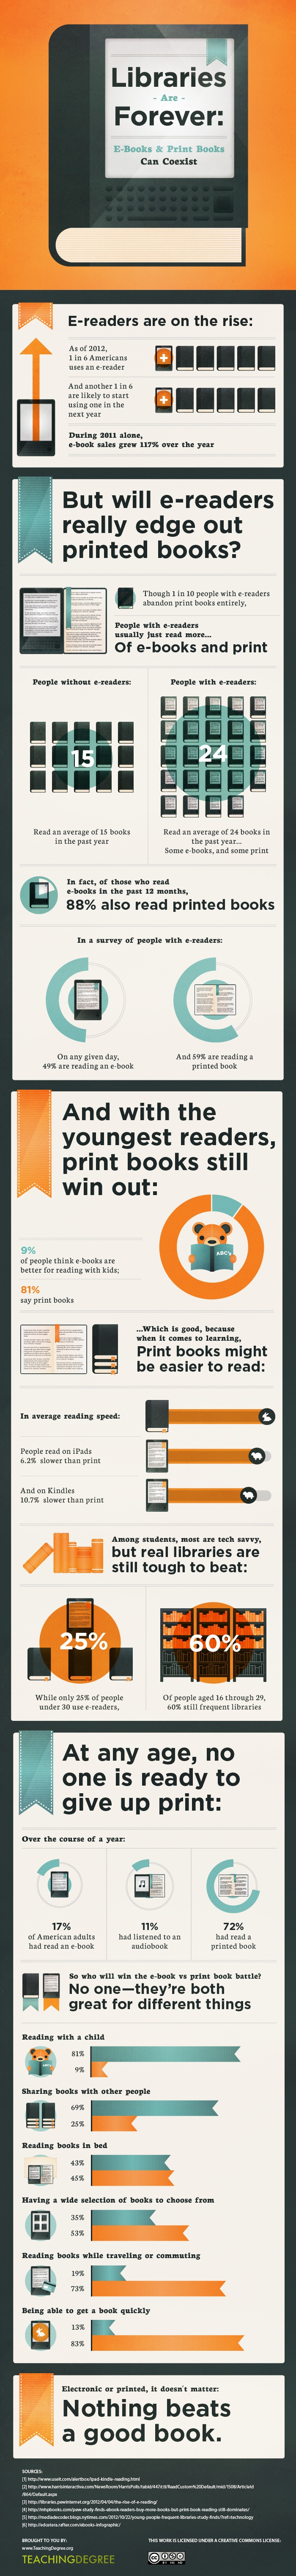 How-Can-eBooks-and-Print-Books-Coexist-Infographic